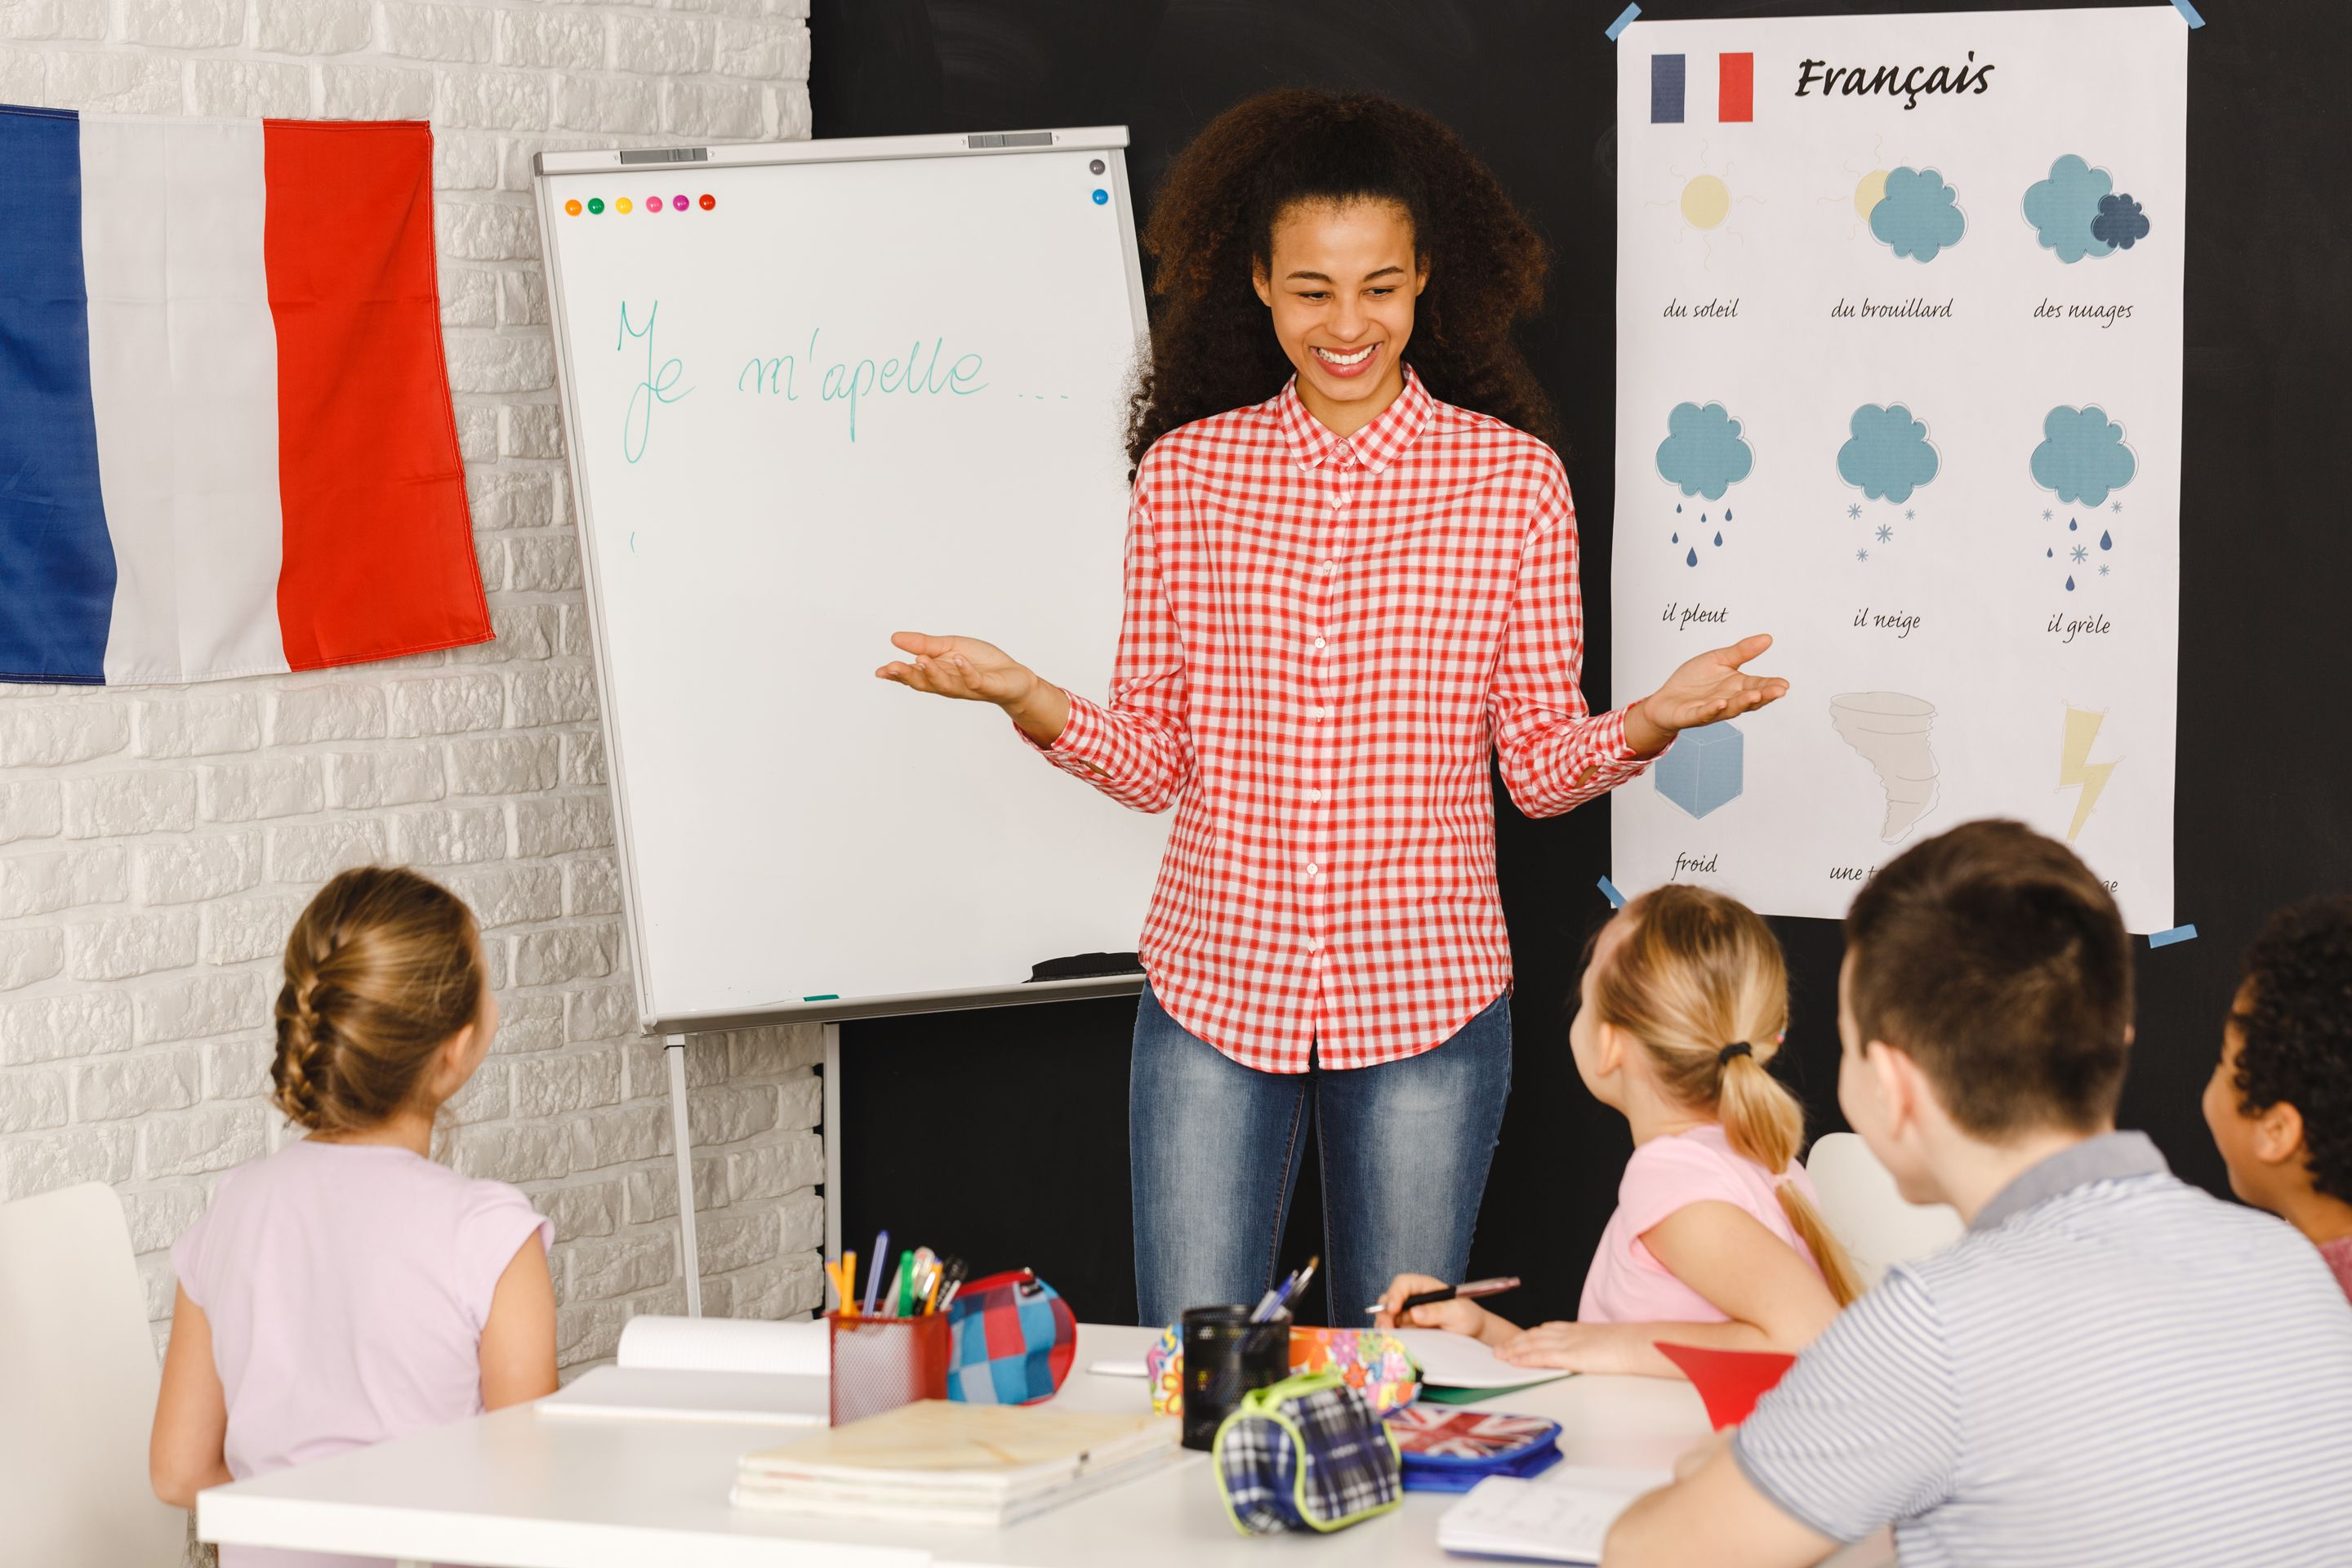 A French teacher instructing a class of middle school students